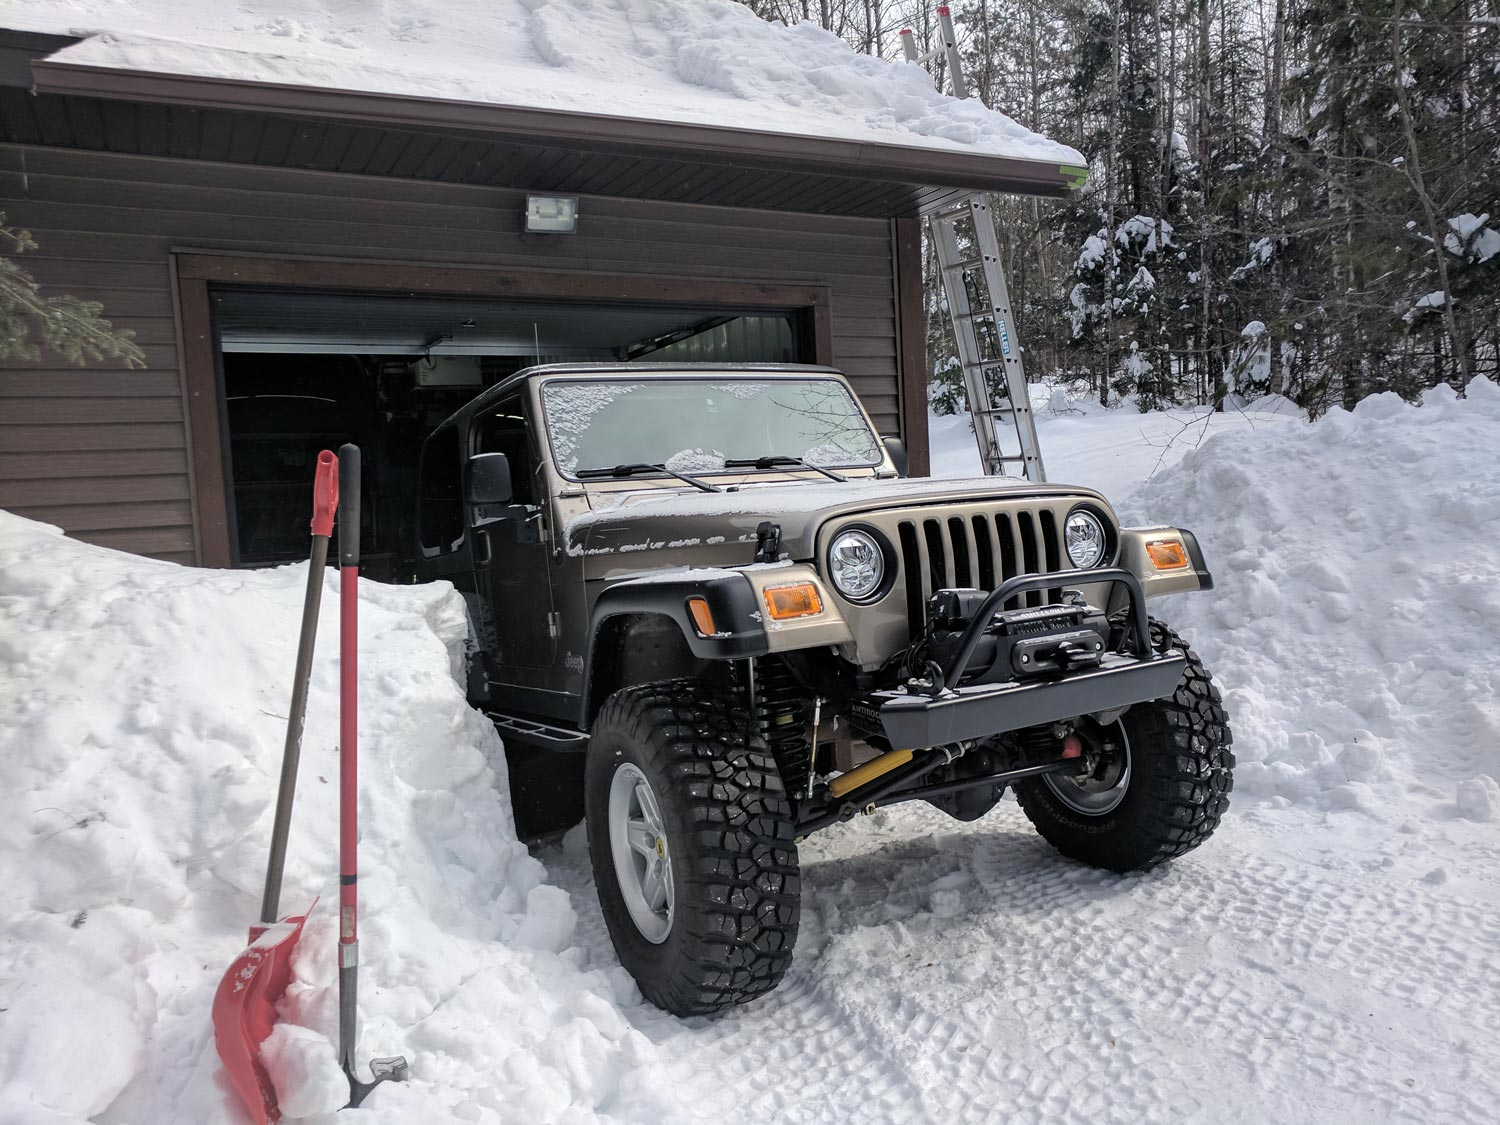 20190305_khaki-tj-garage-snow.jpg